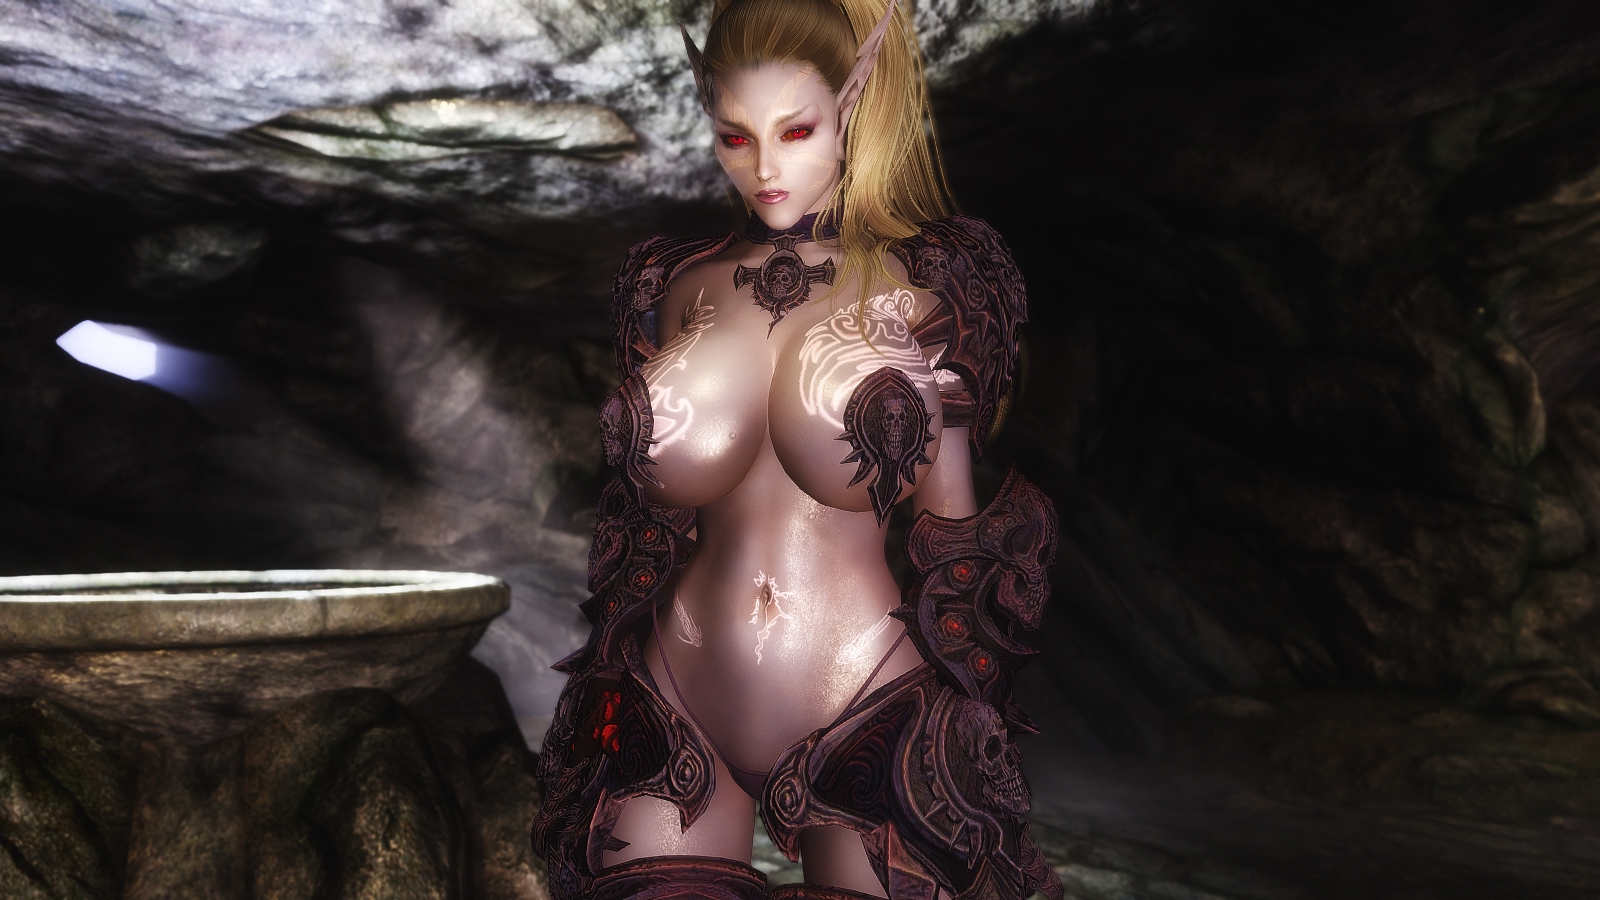 Sexual dark elf naked photos